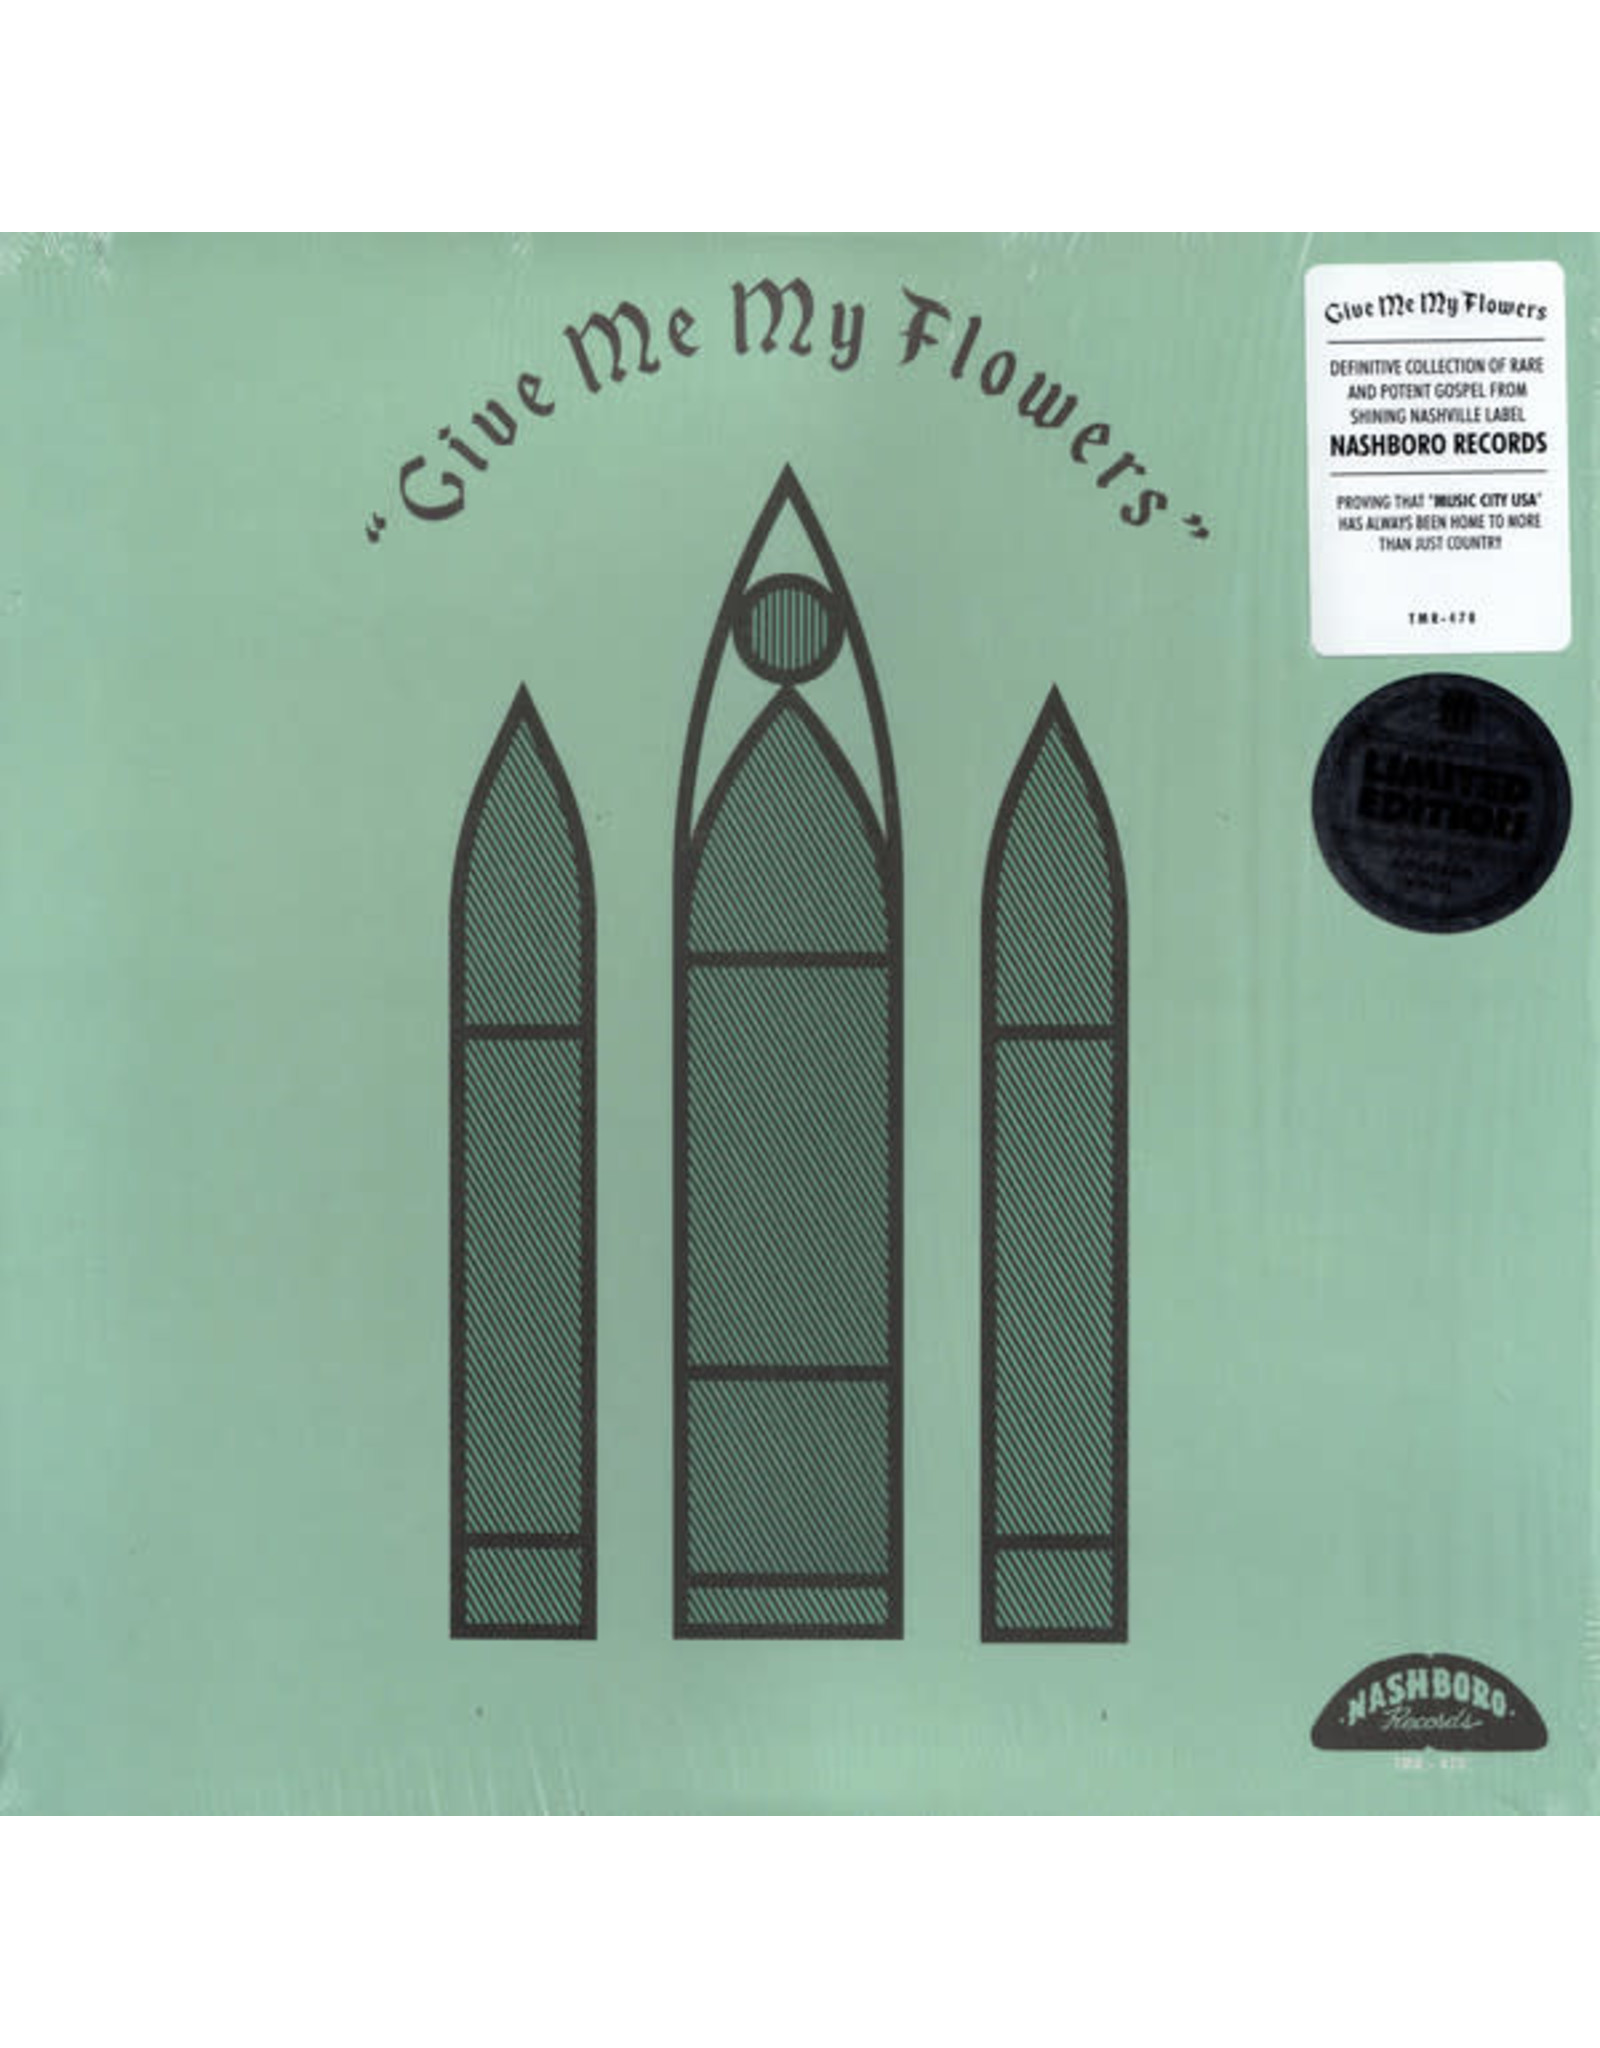 V/A - Give Me My Flowers LP